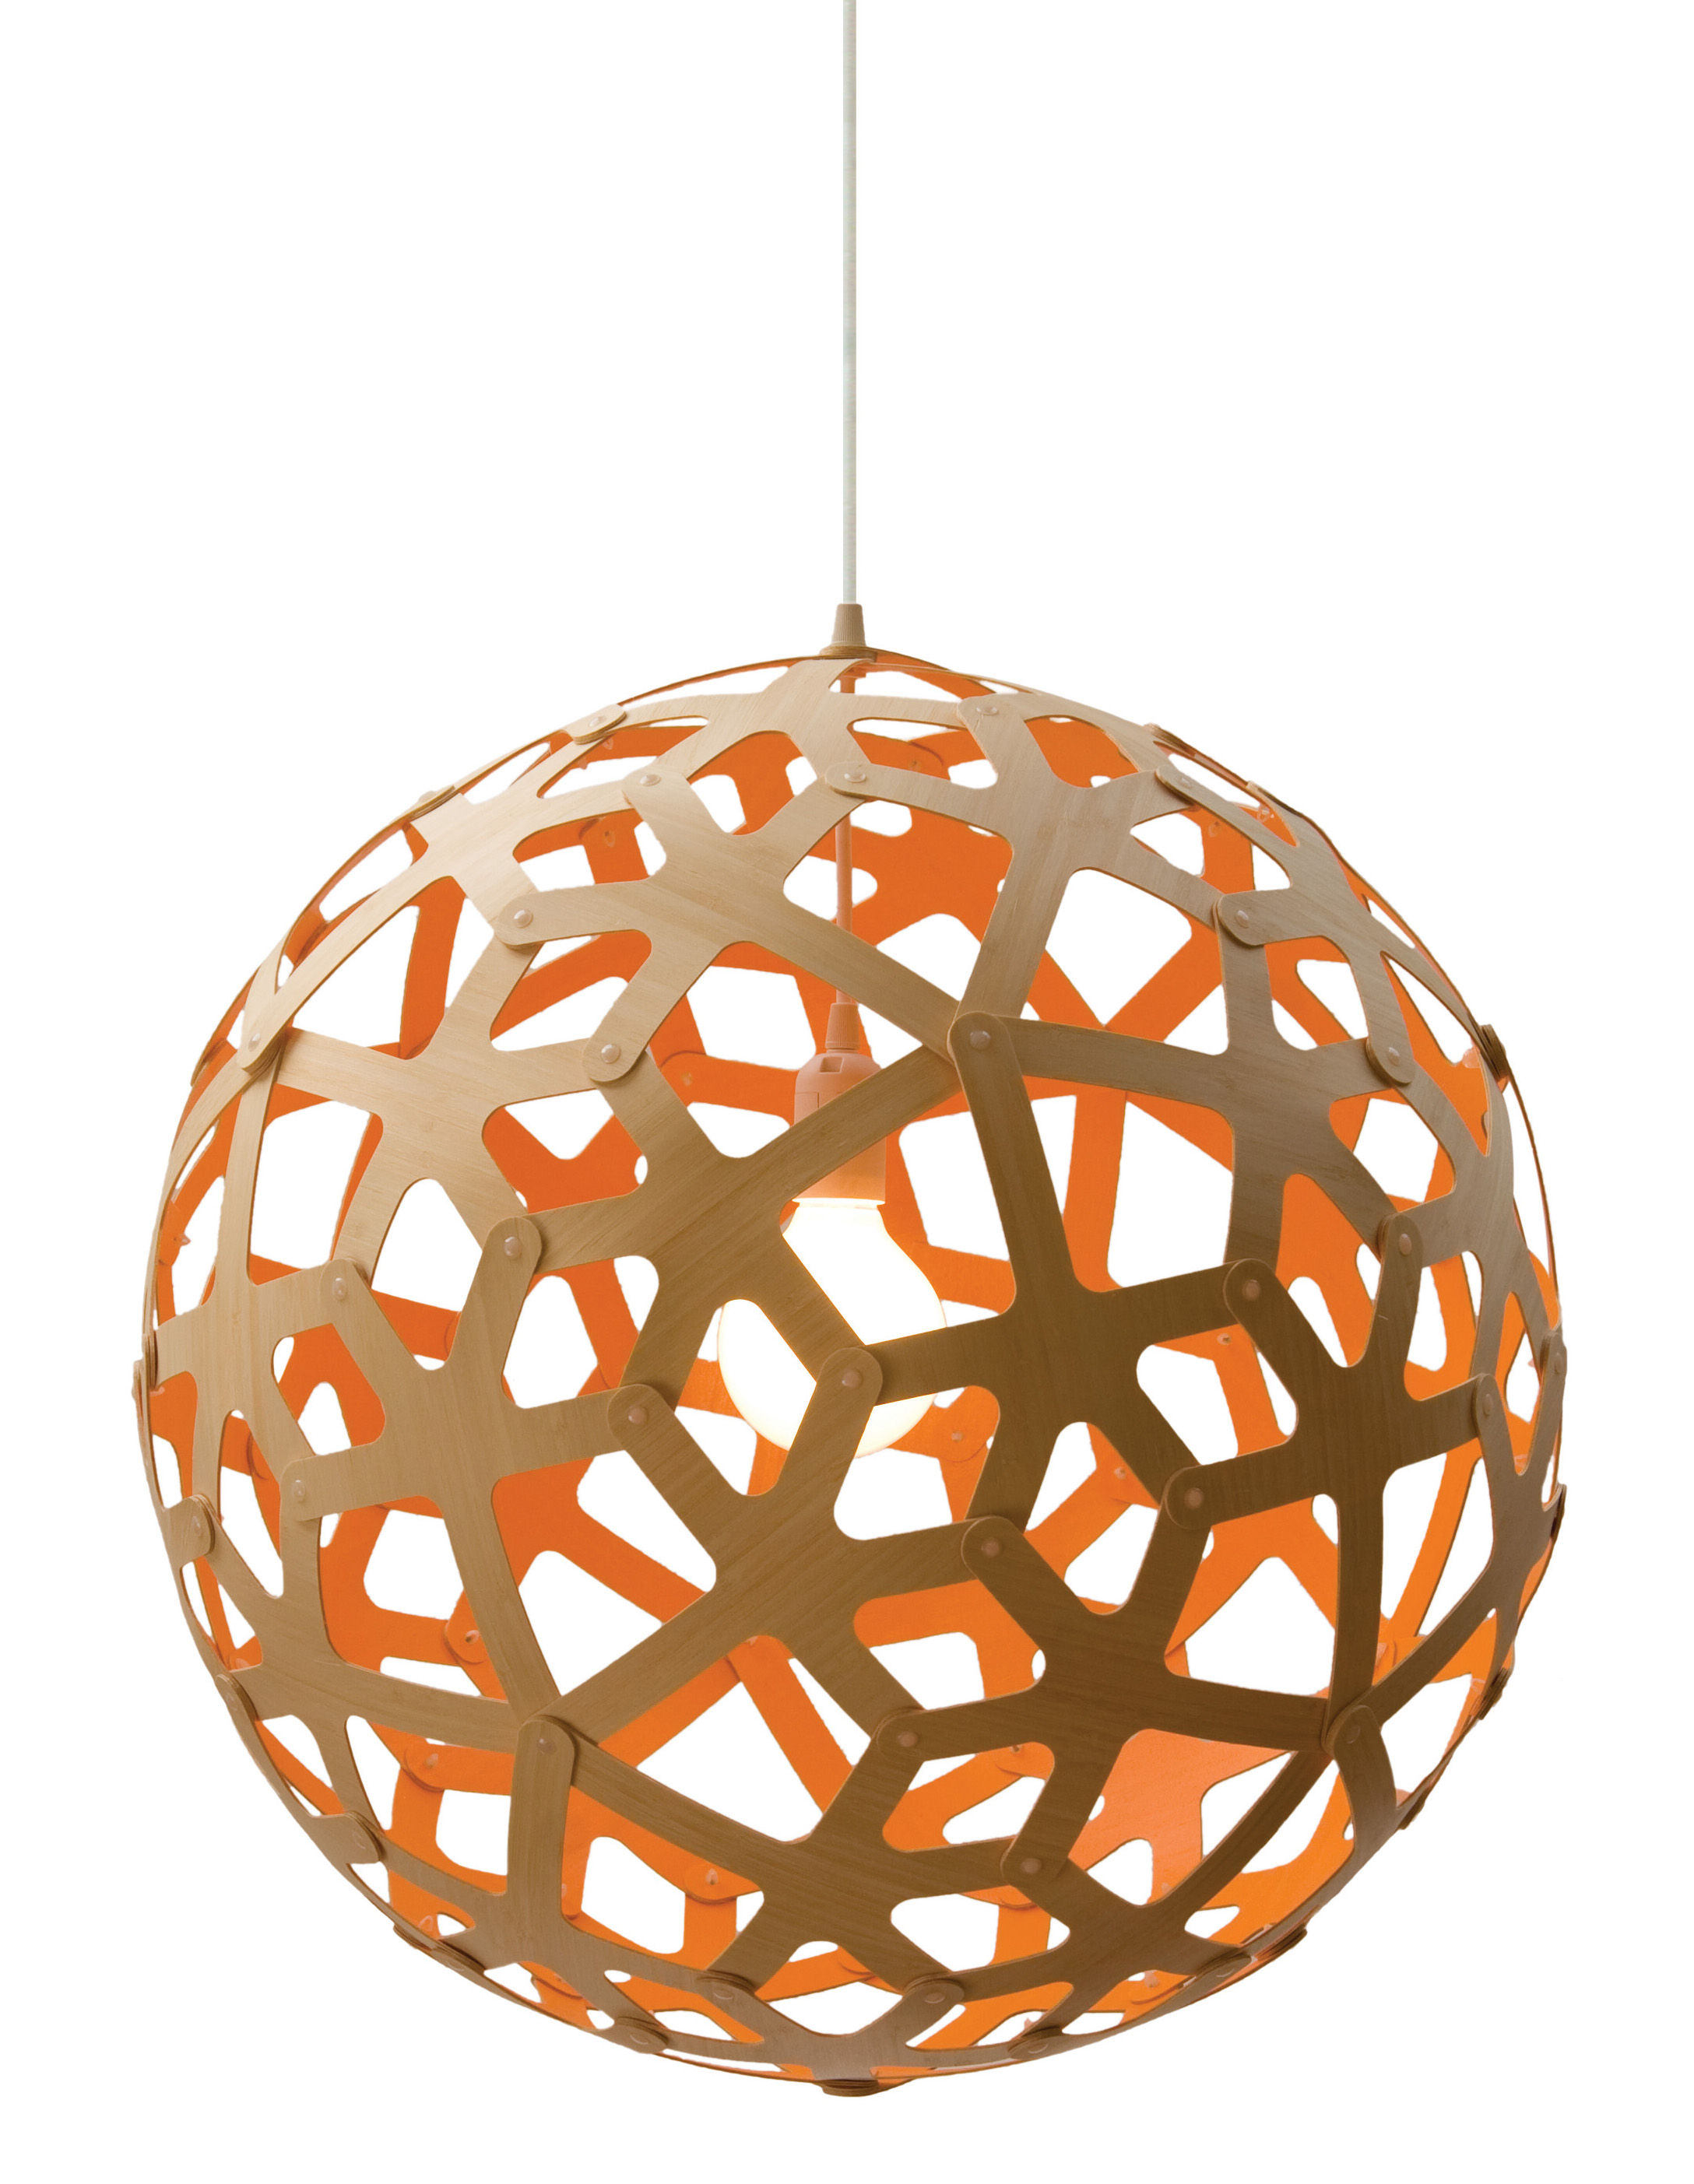 Lighting - Pendant Lighting - Coral Pendant - / Ø 40 cm - Two-coloured by David Trubridge - Orange / natural wood - Pine